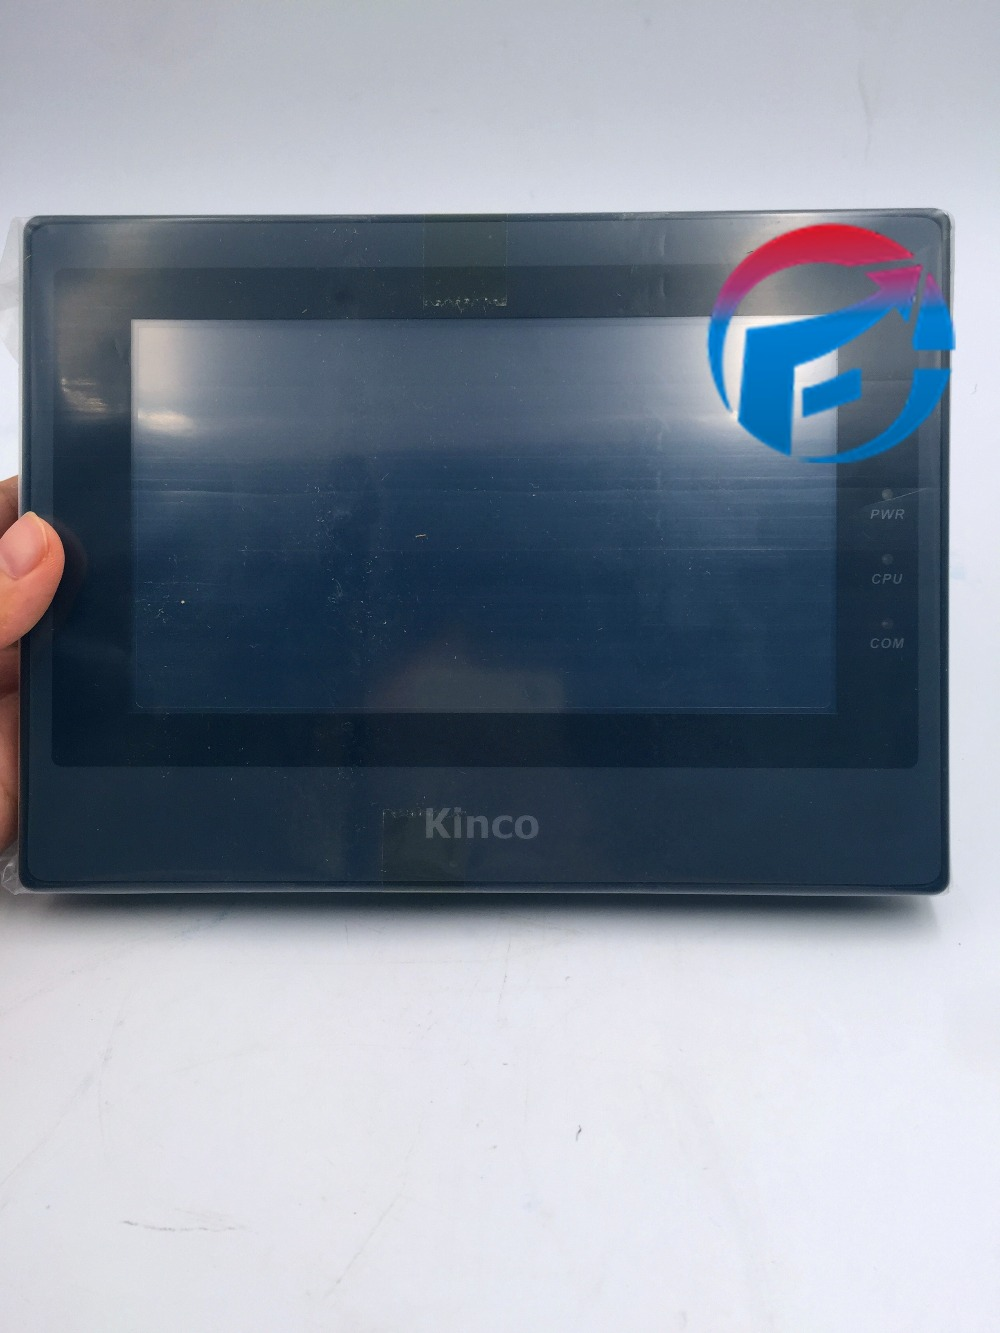 HMI MT4414TE Kinco eView 7 USB host Ethernet with Free programming Cable & Software